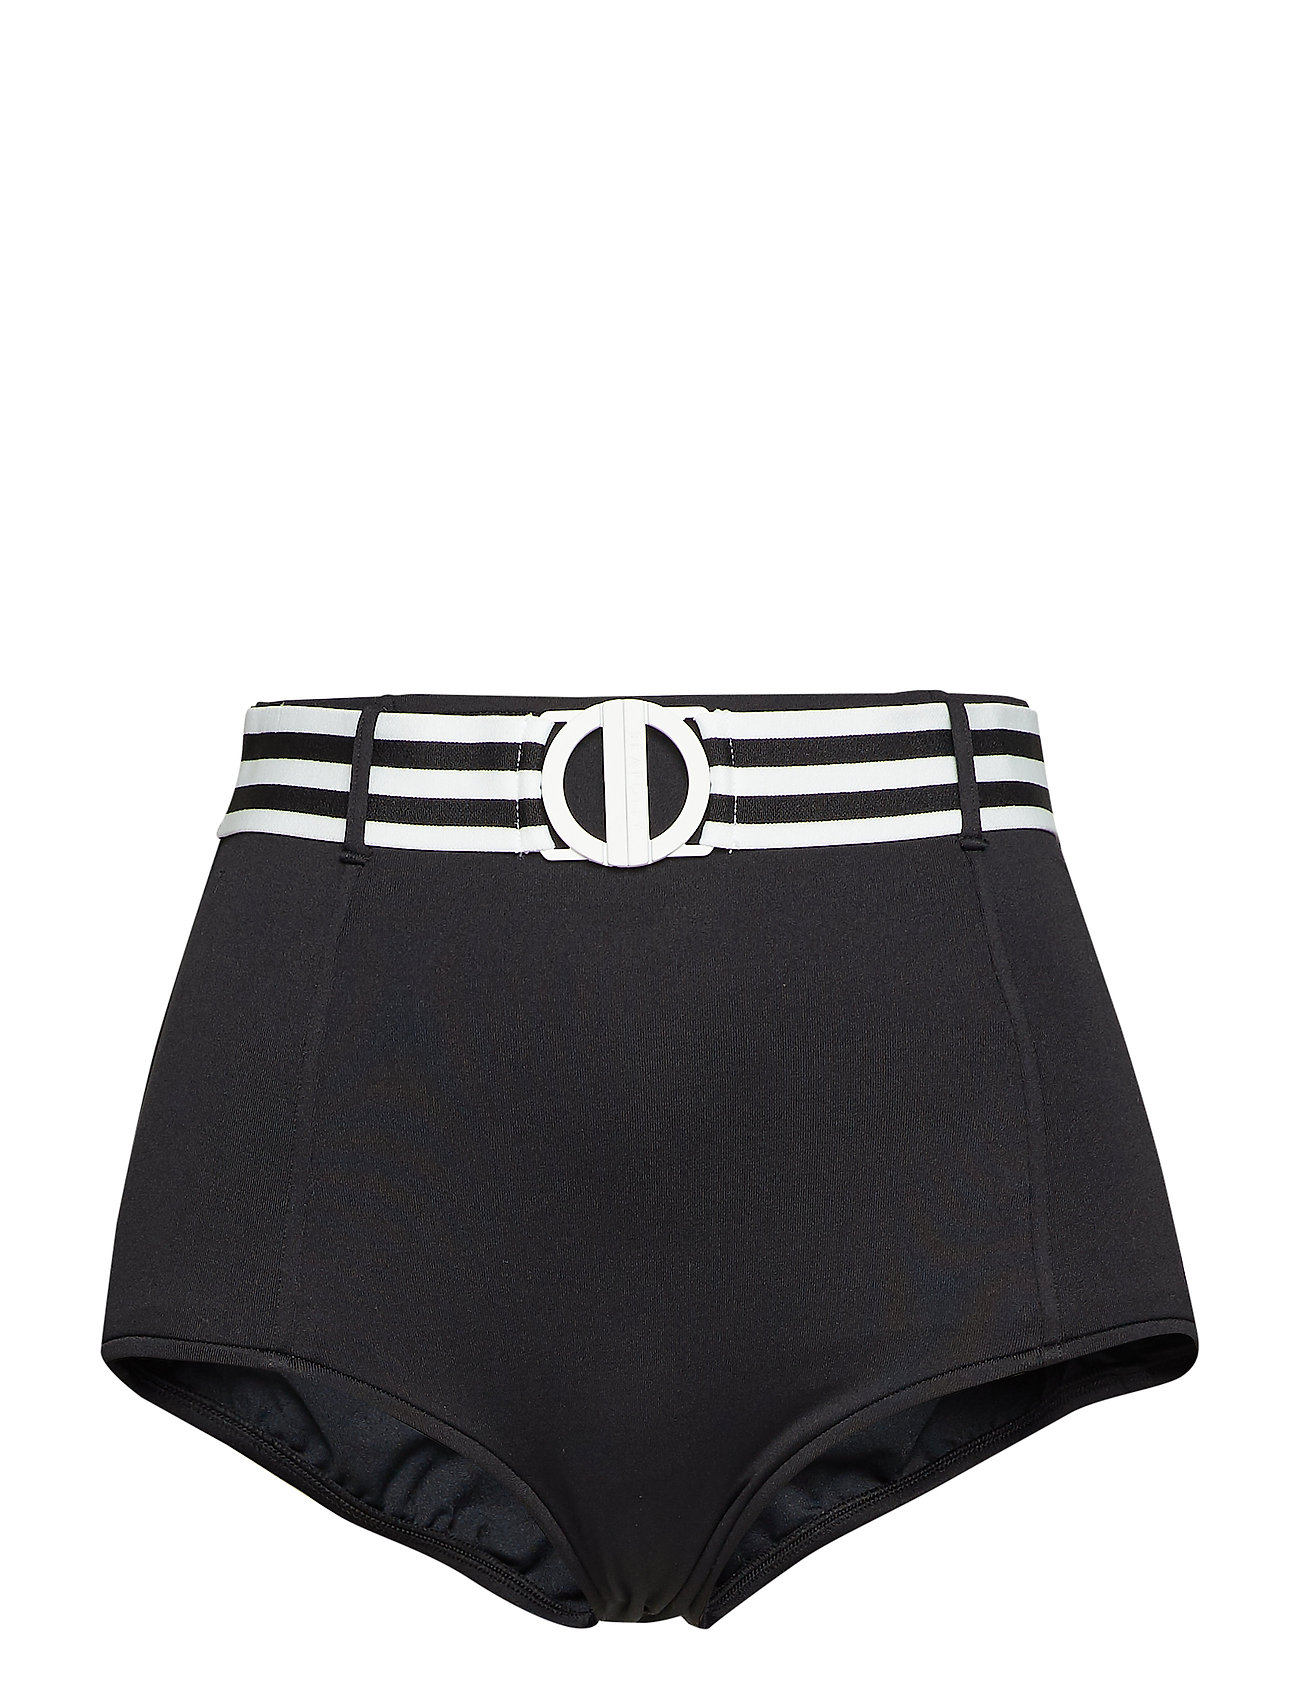 Seafolly Belted High Waisted Pant - BLACK